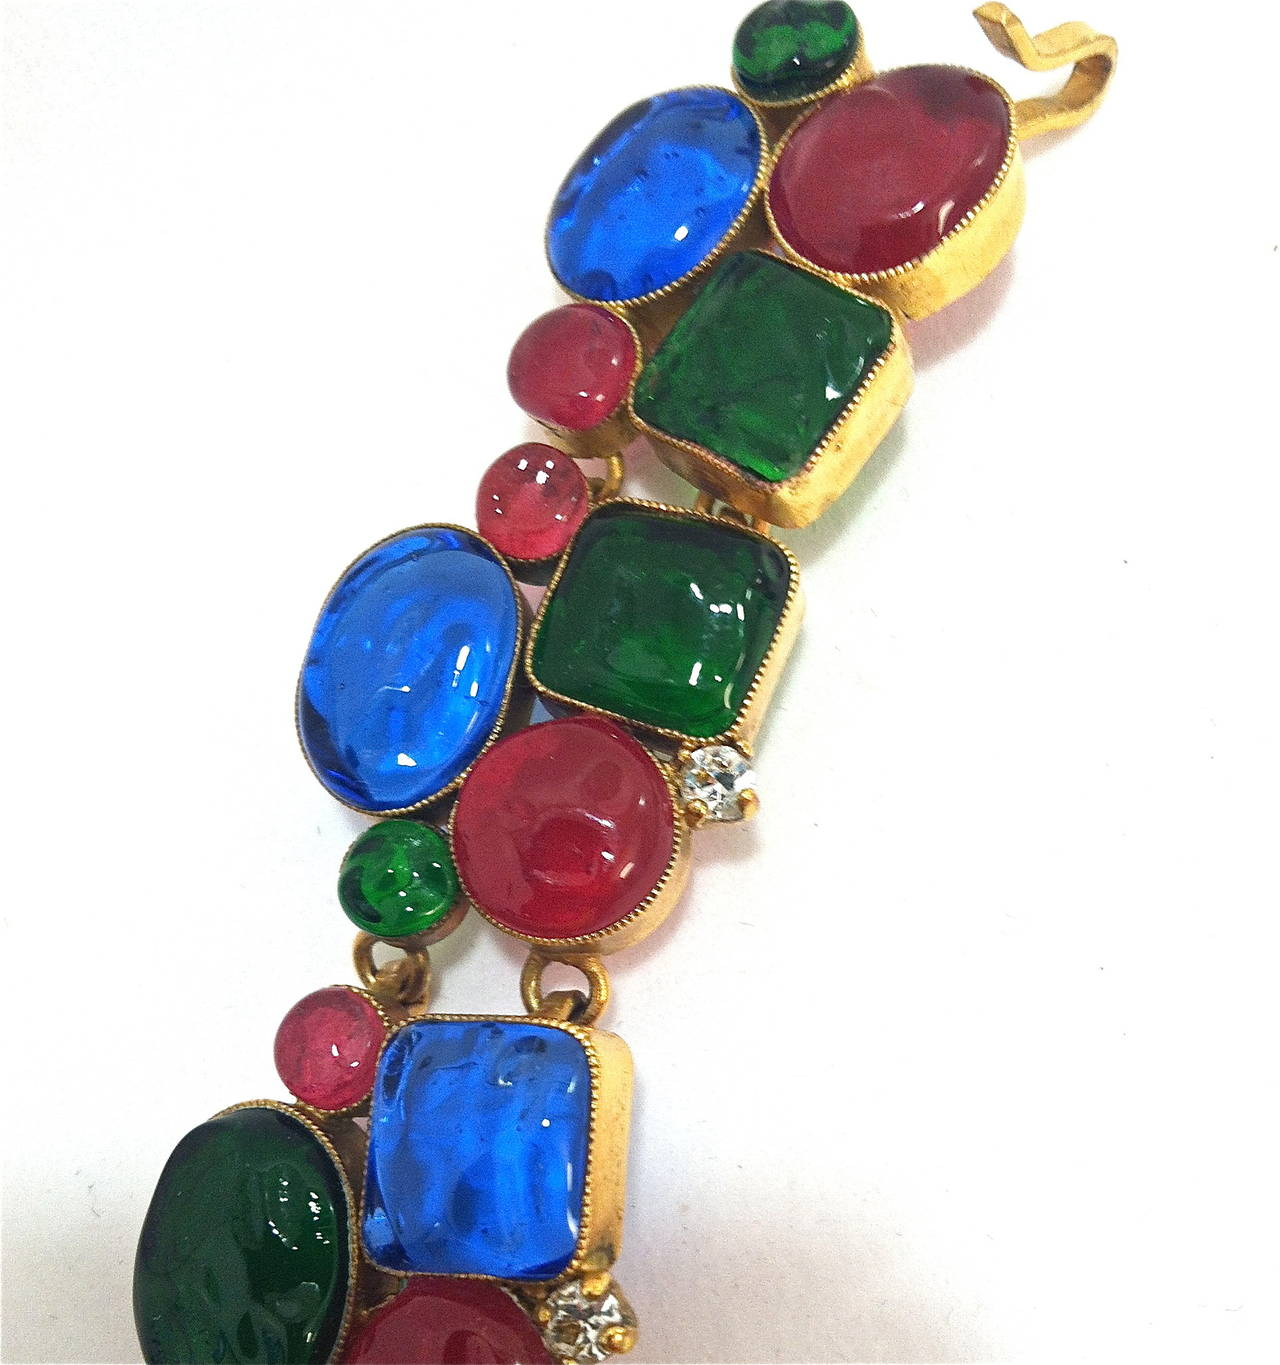 Rare 1970's Mademoiselle Chanel  Byzantine Necklace by Gripoix 5